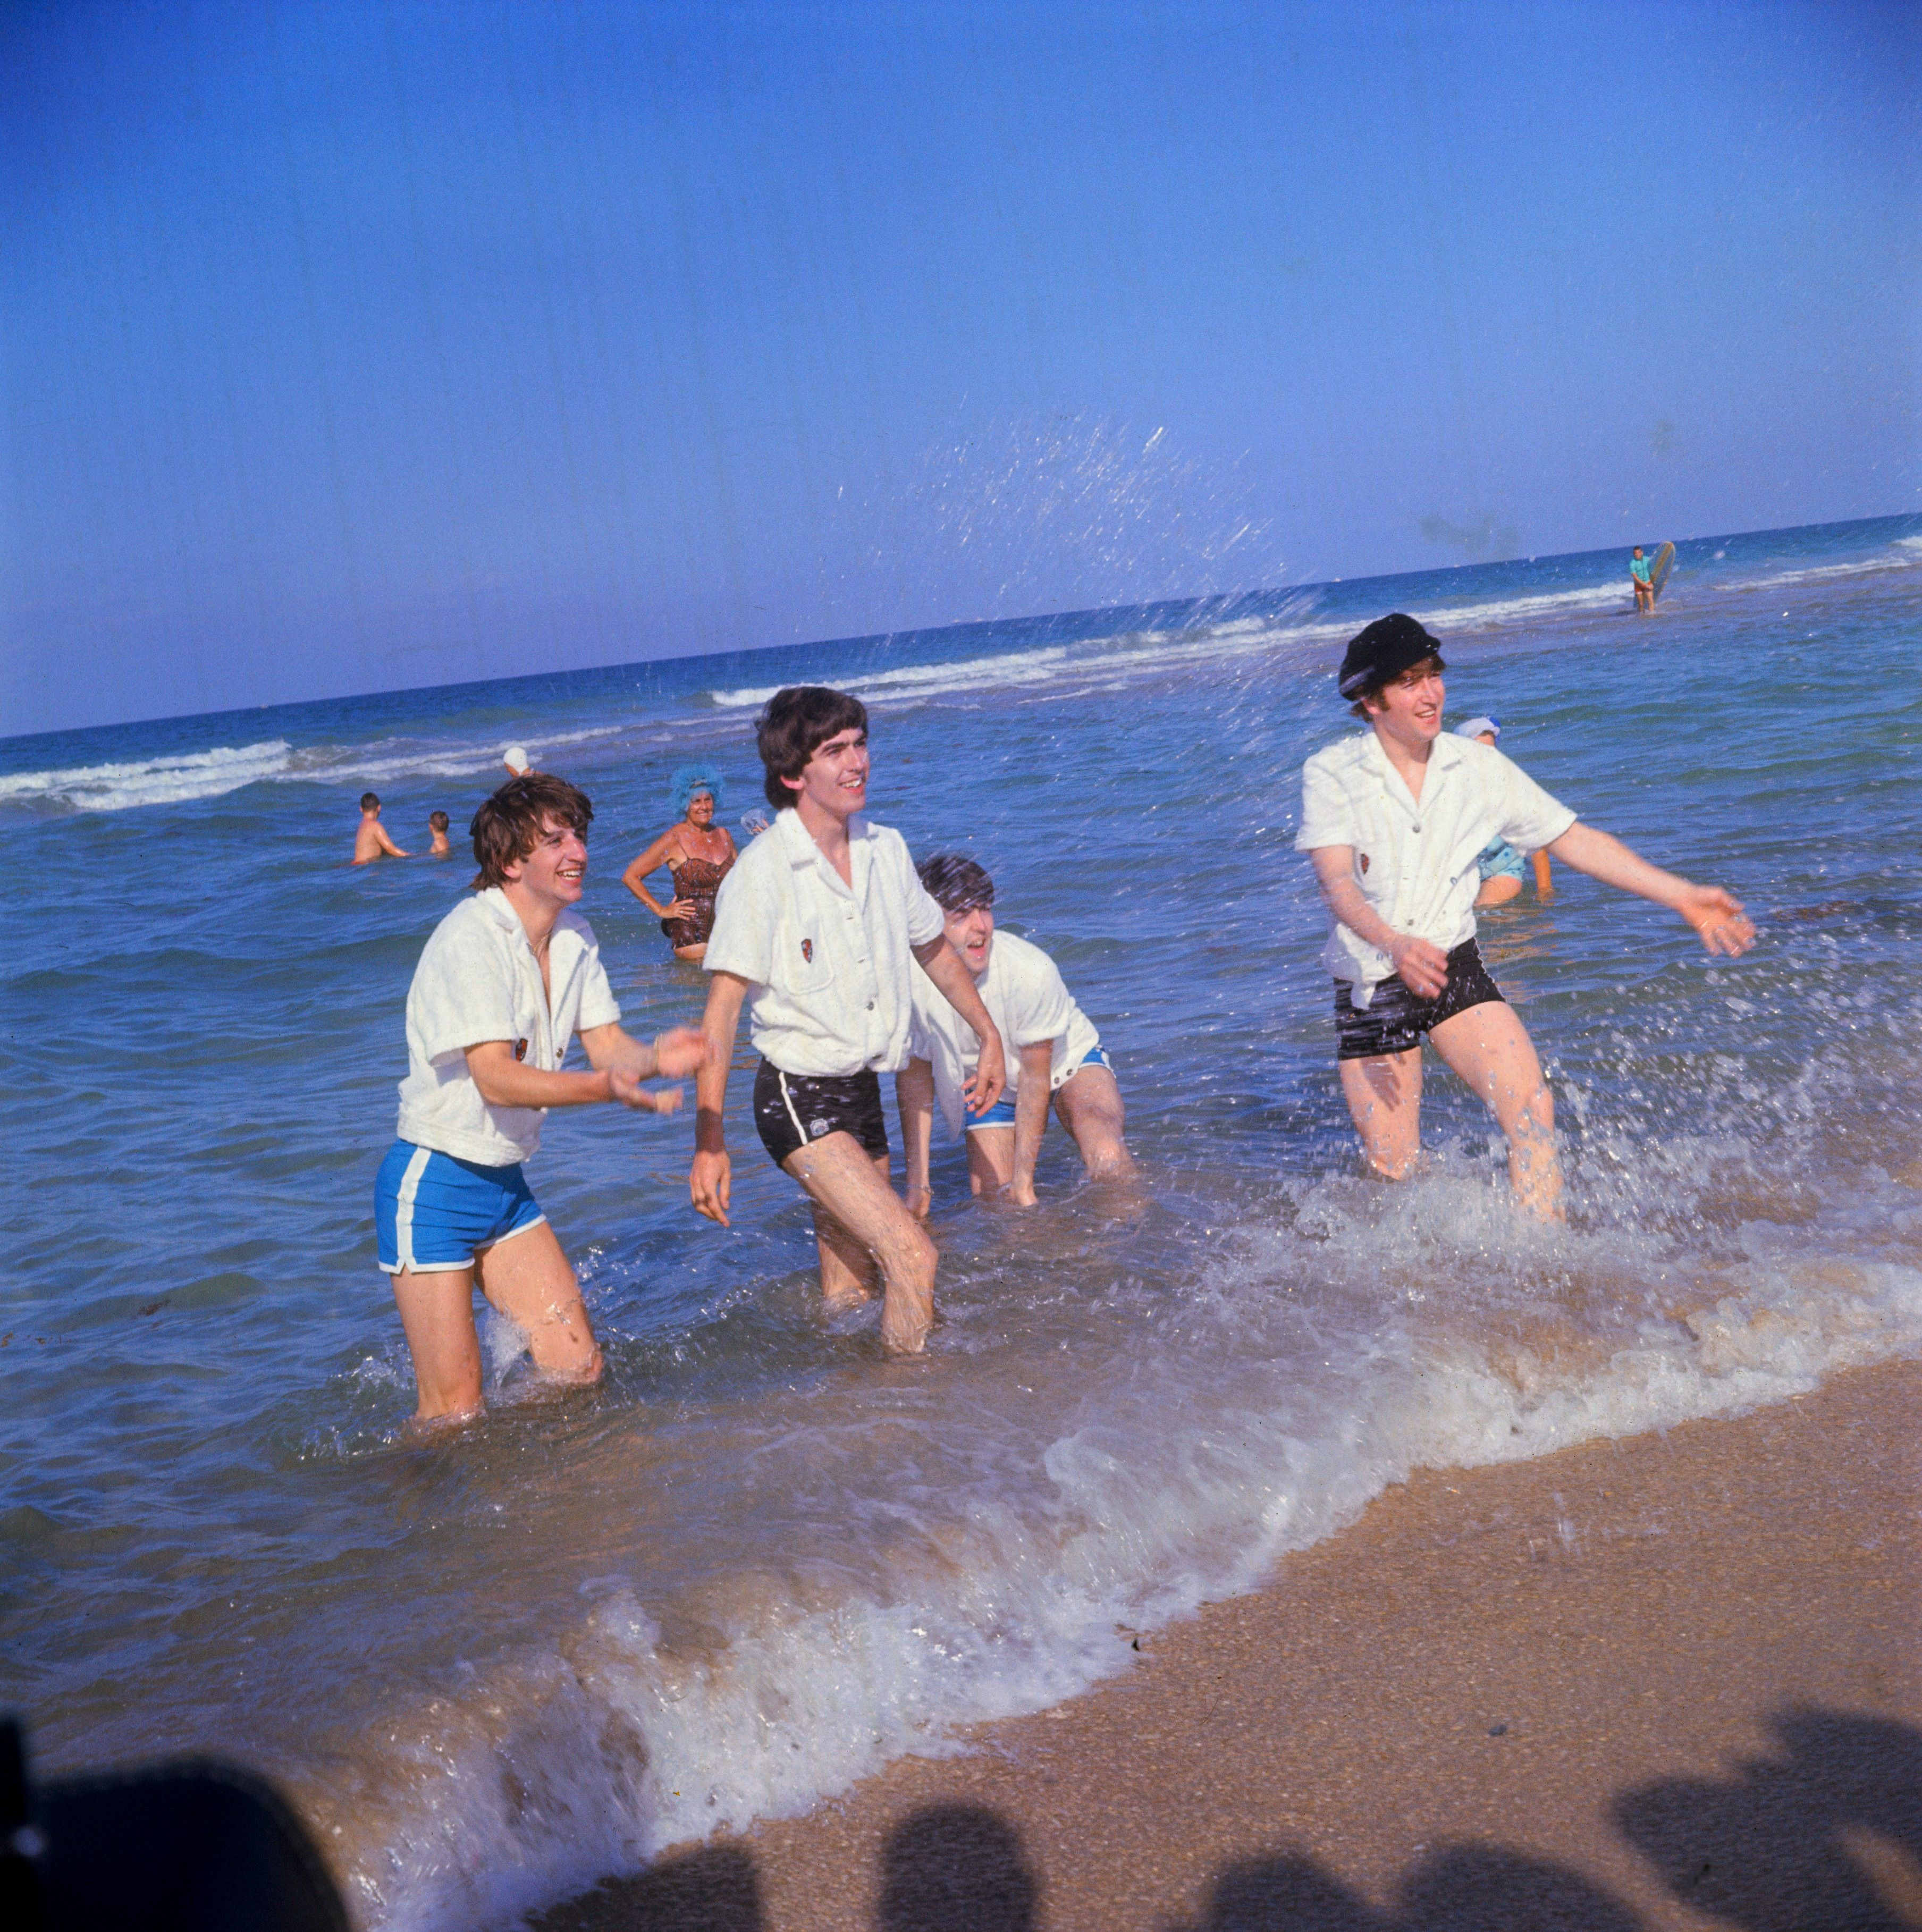 15 Feb 1964, Miami Beach, Florida, USA --- Ringo Starr, George Harrison, Paul McCartney, and John Lennon (L-R) splash onlookers while wading along the surf in Miami Beach, Florida. The Fab Four are in town to perform for a second time on The Ed Sullivan Show. --- Image ©Bettmann/CORBIS